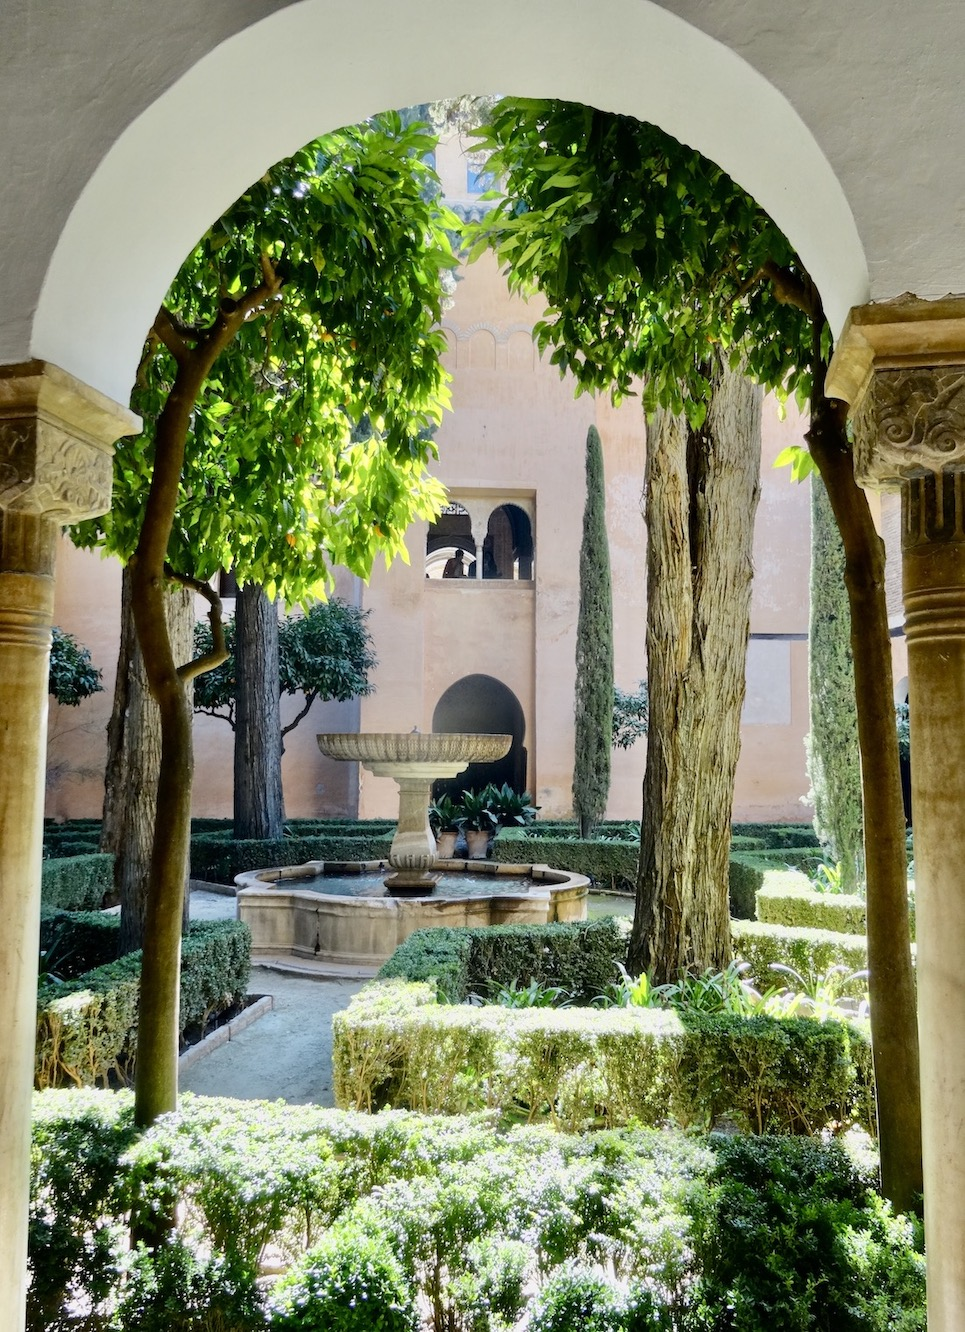 A leafy courtyard in The Alhambra Palace Gardens.